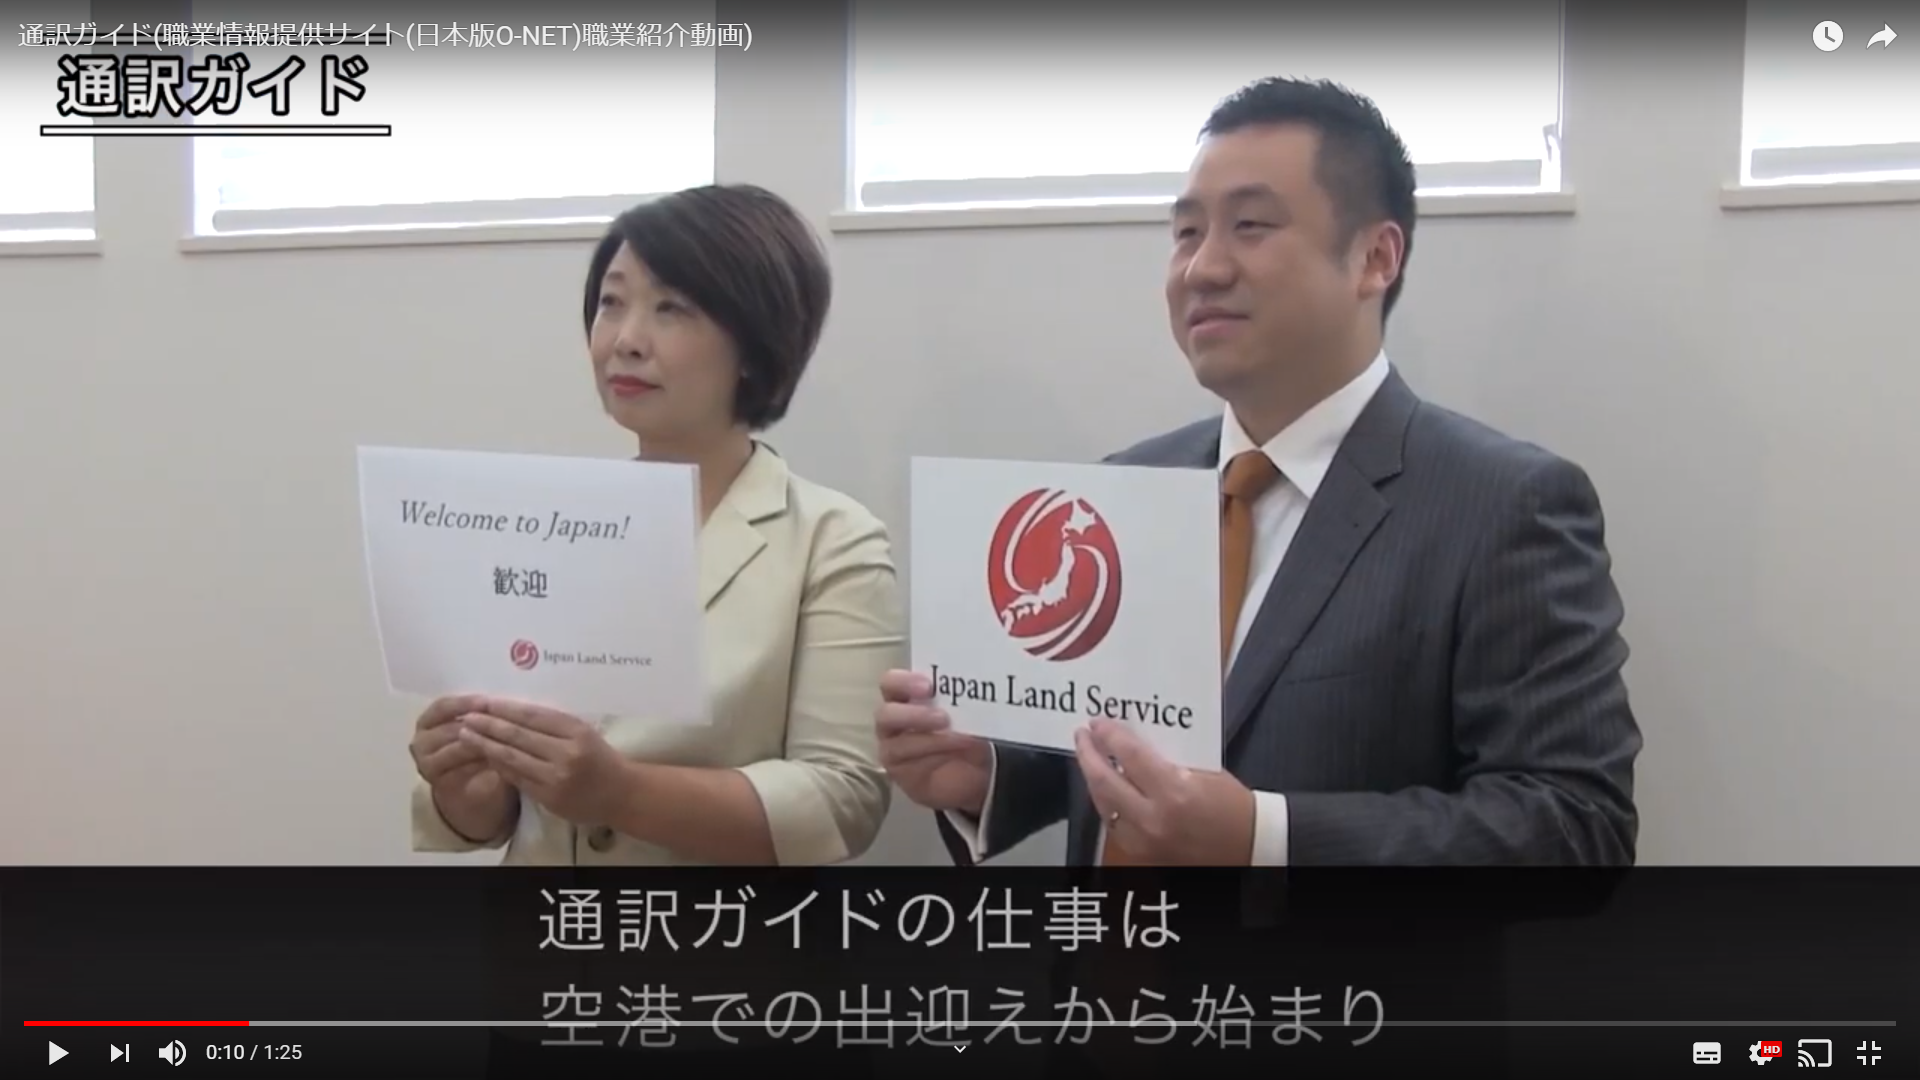 Japan Land Service has been introduced at Japanese ...